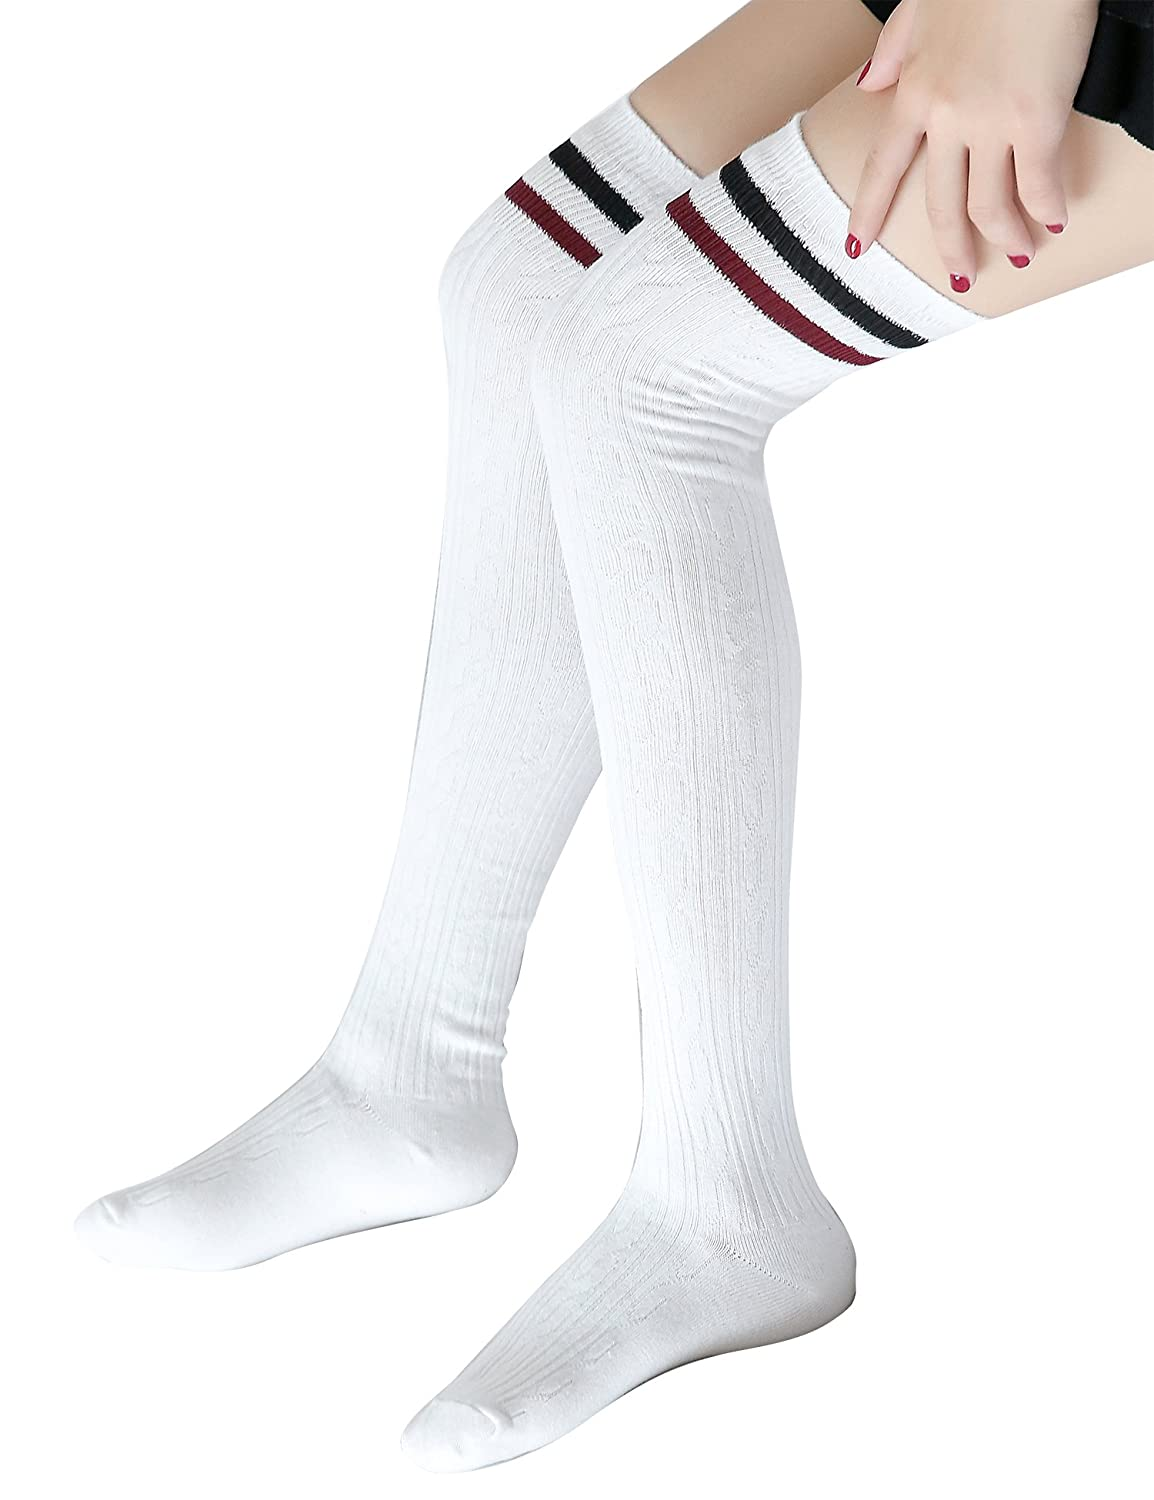 HHei/_K Women Men Fashion Colorful Tube Socks Casual Printed Cotton Socks